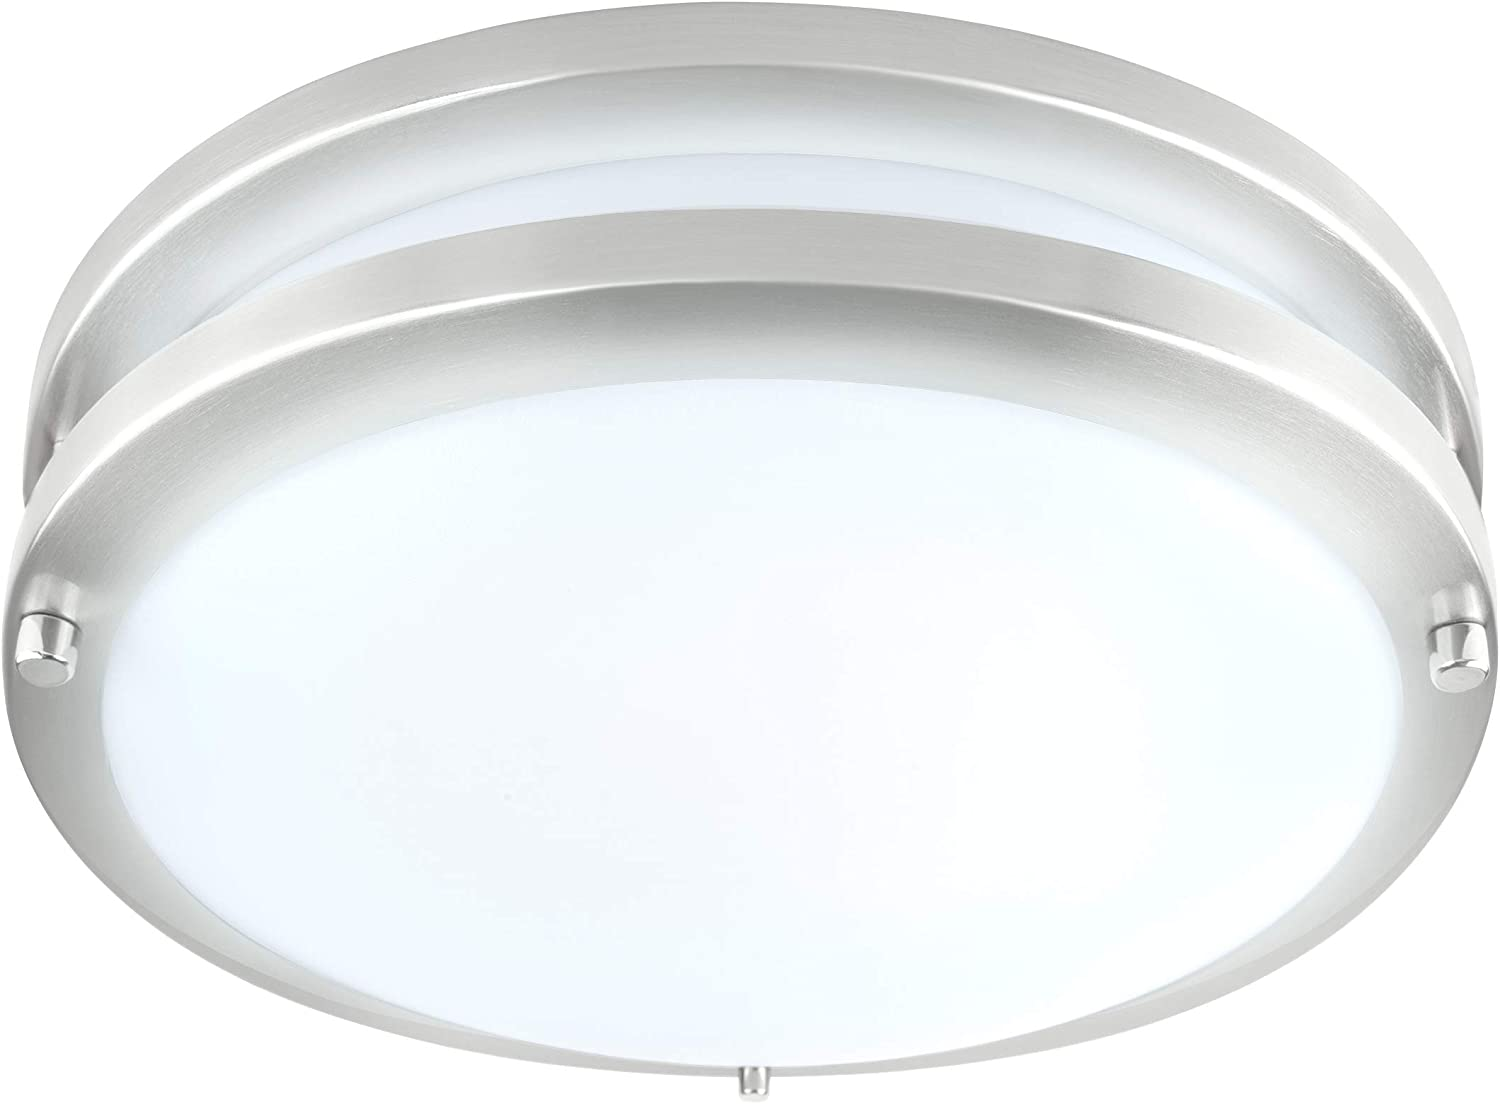 LB72171 LED Flush Mount Ceiling Light, 10 inch, 17W (120W Equivalent) Dimmable 1350lm, 5000K Daylight, Brushed Nickel Round Lighting Fixture for Kitchen, Hallway, Bathroom, Stairwell